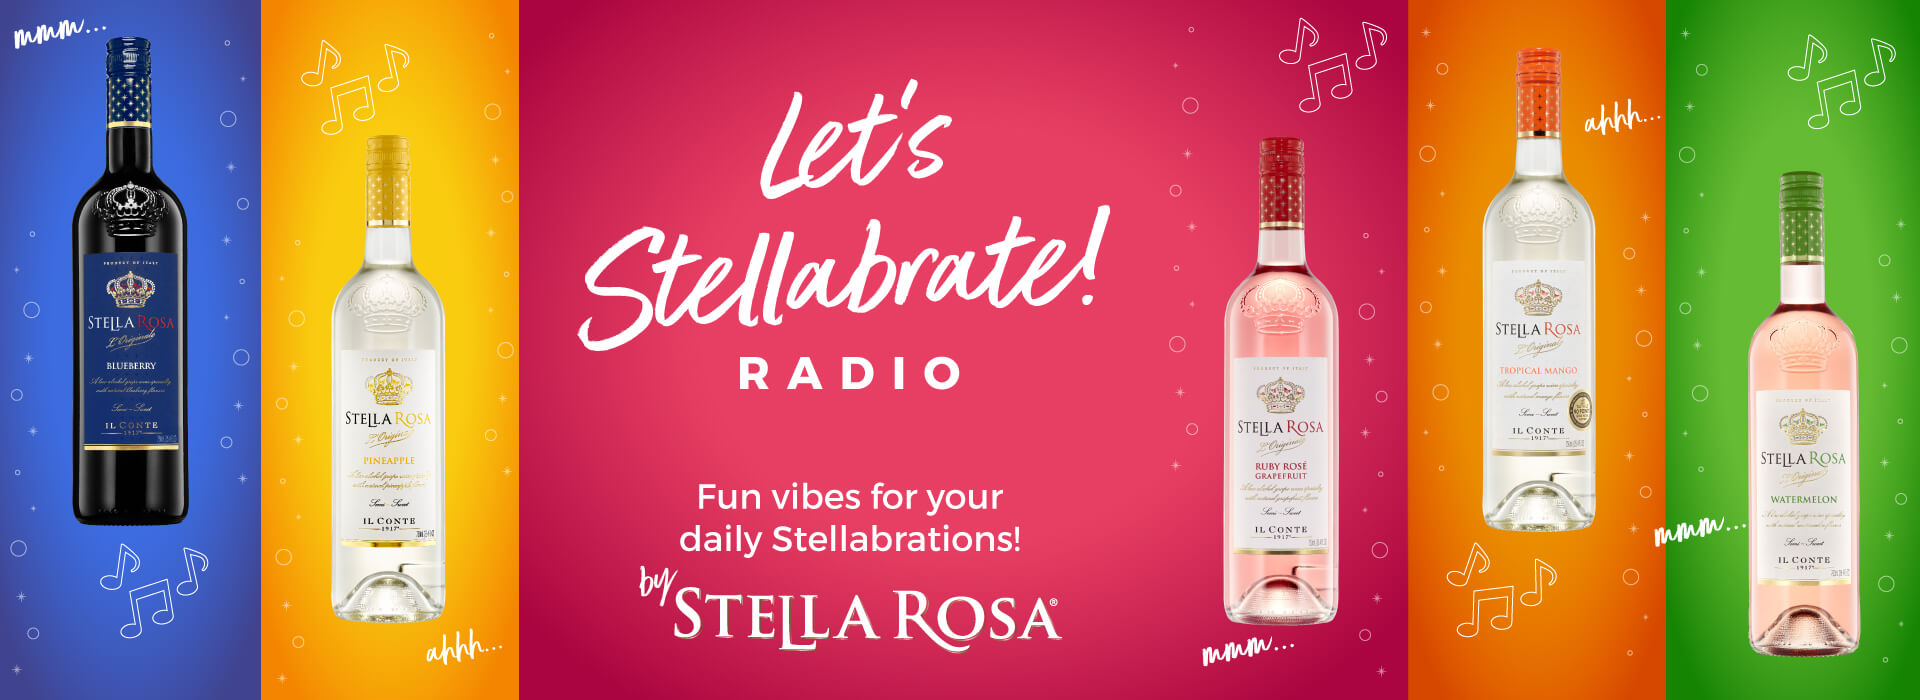 Let's Stellabrate! Radio. Fun vibes for your daily Stellabrations! By Stella Rosa®